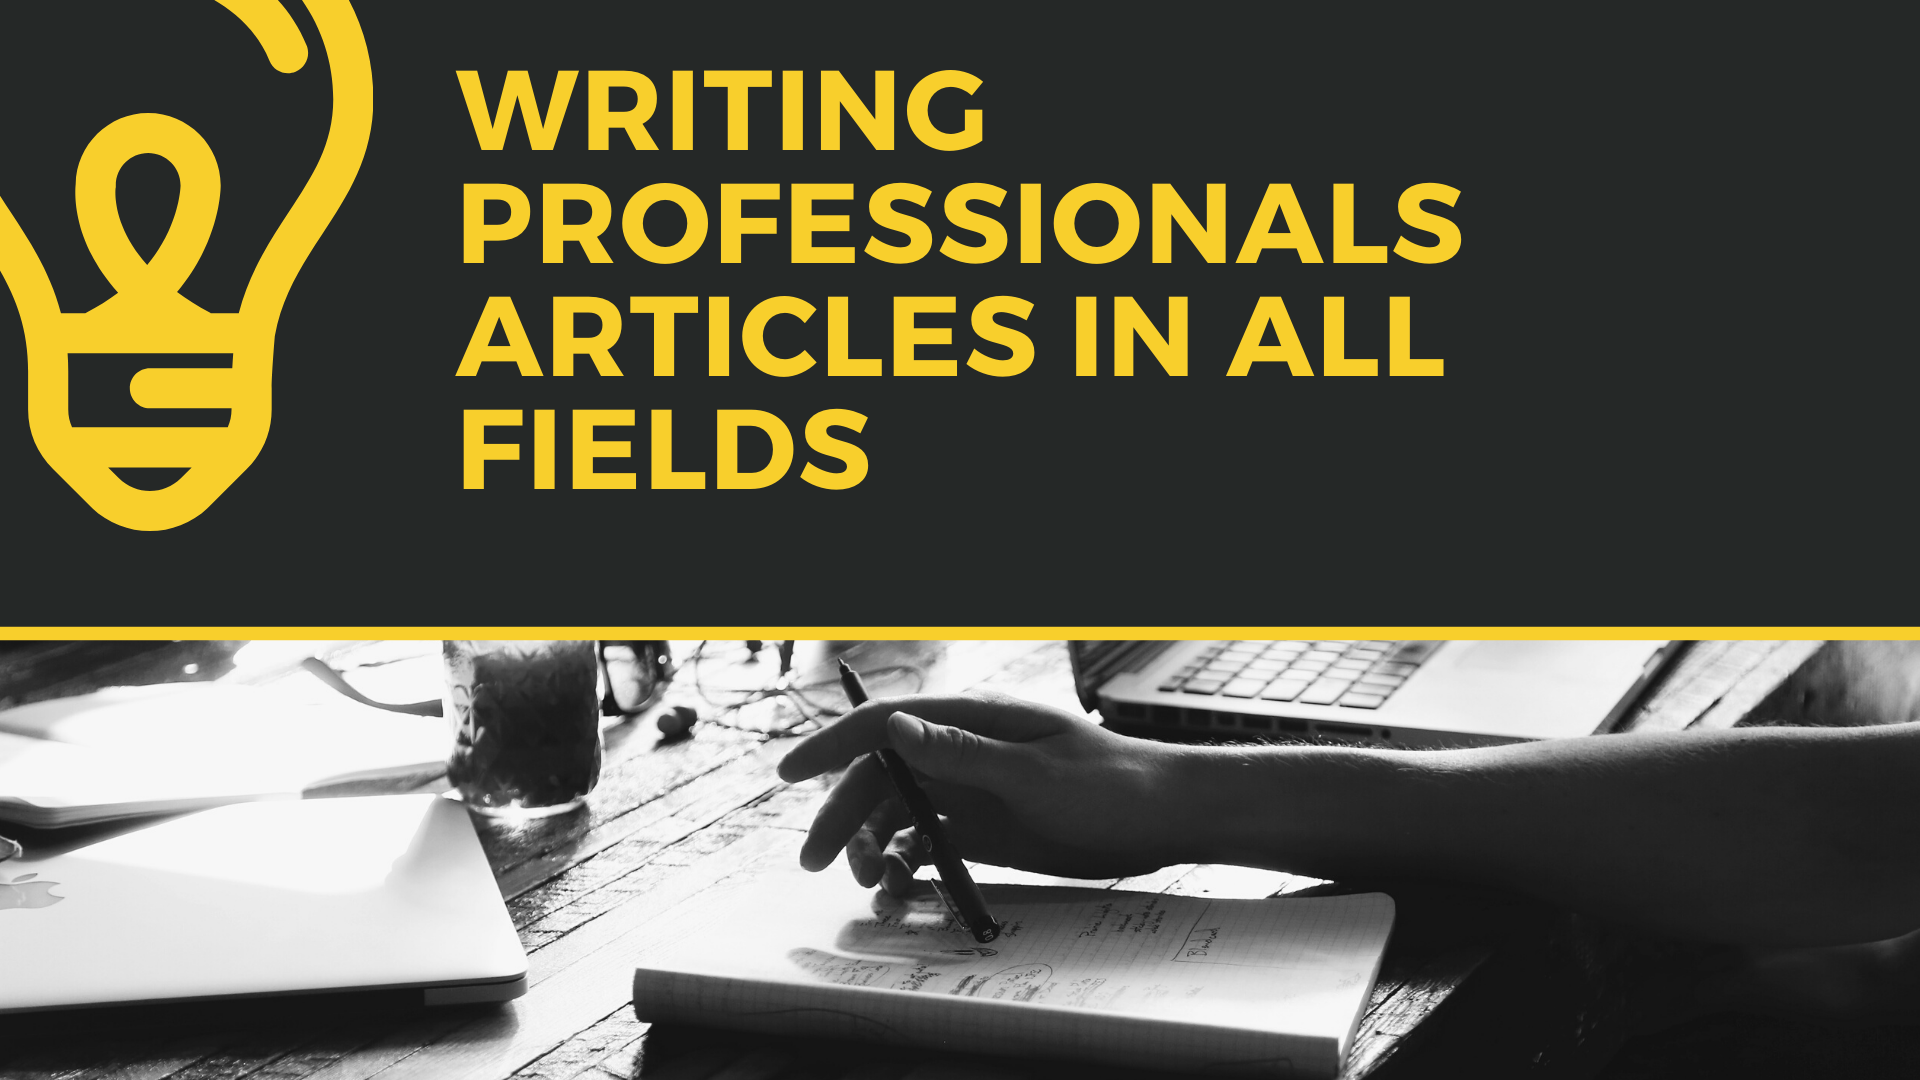 writing professionals articles